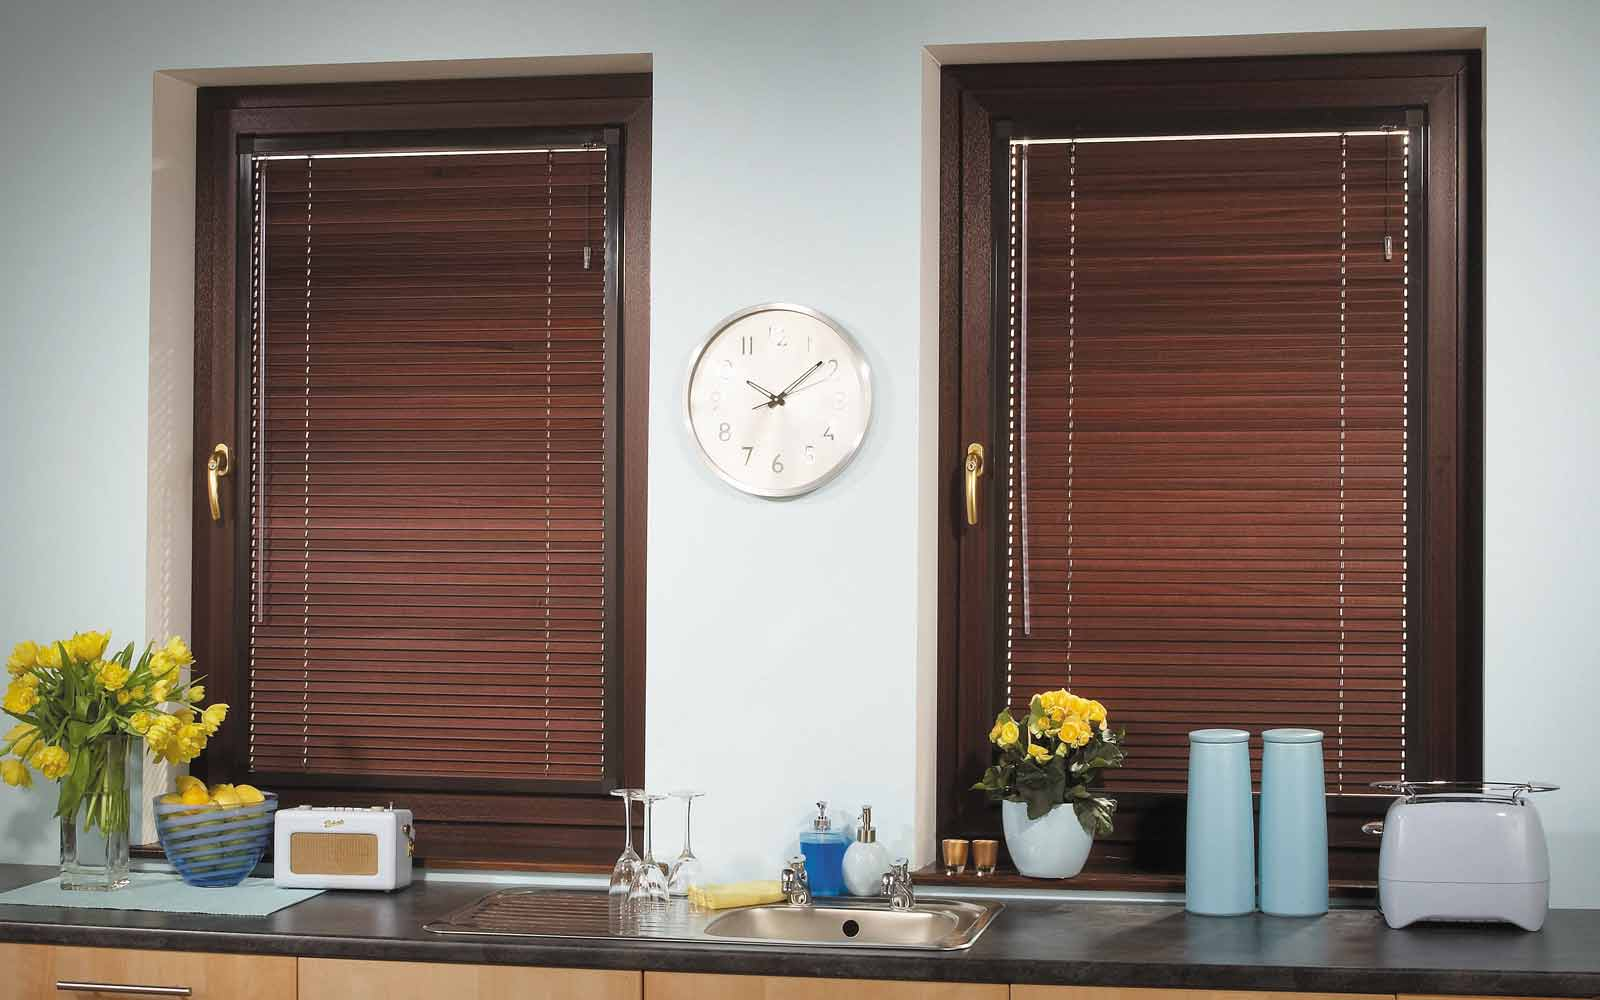 Aluminium venetians in a kitchen